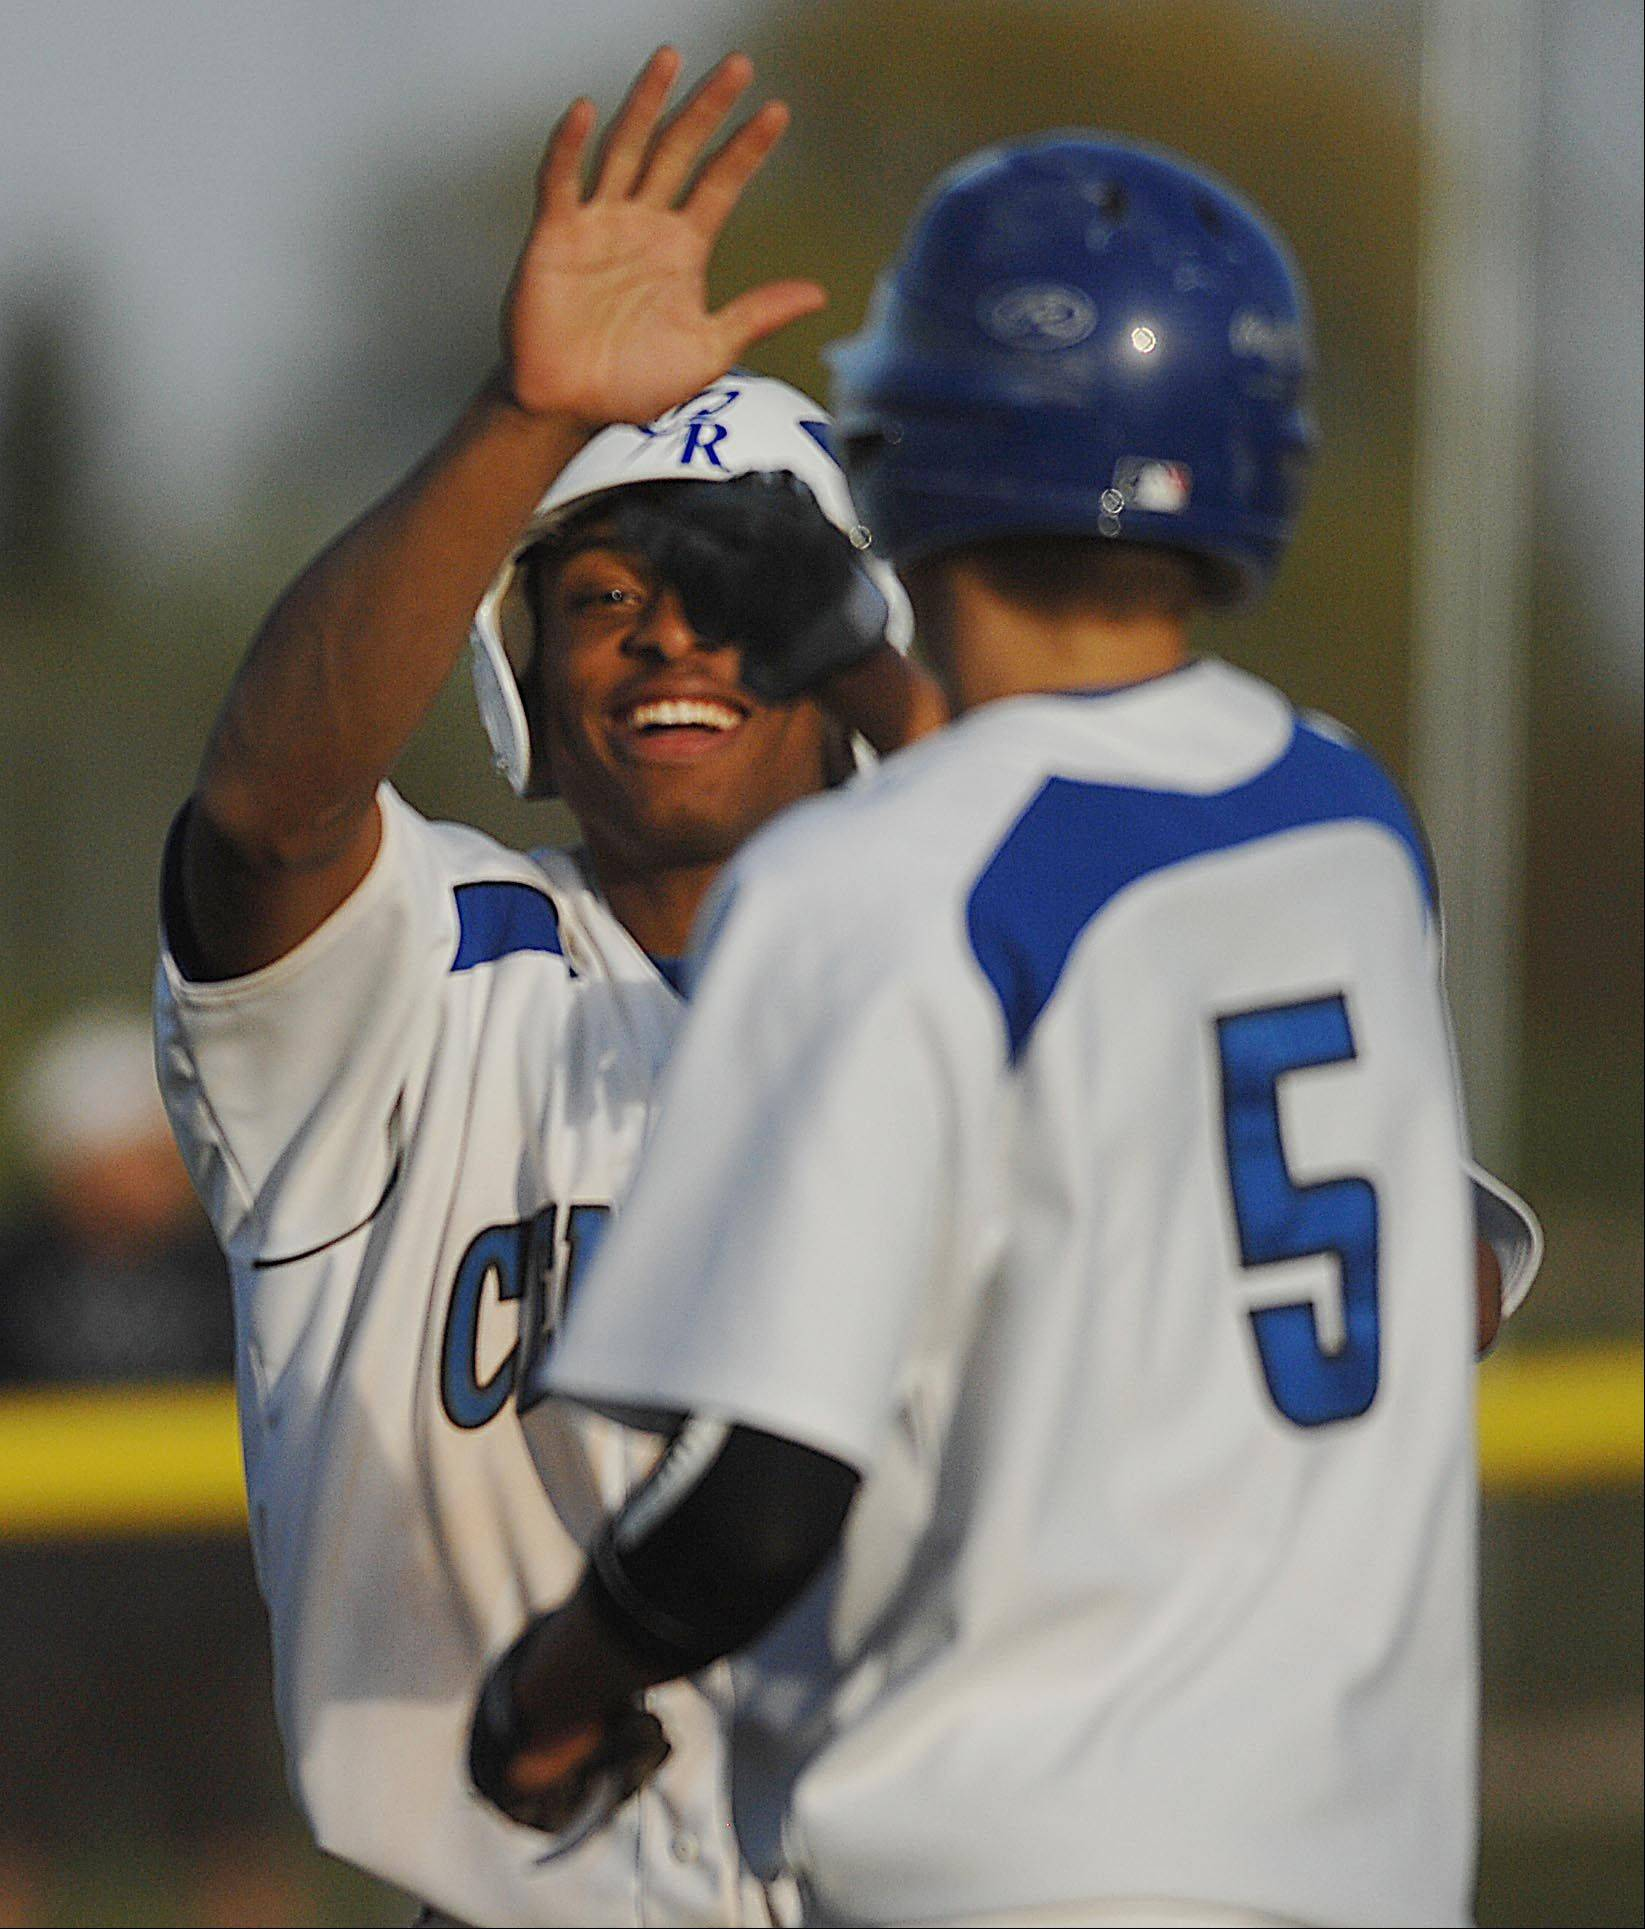 Burlington Central's Ray Hunnicutt congratulates teammate Michael Scott on his game-winning RBI base hit to make the score 10-0 over Marengo Thursday in Burlington.